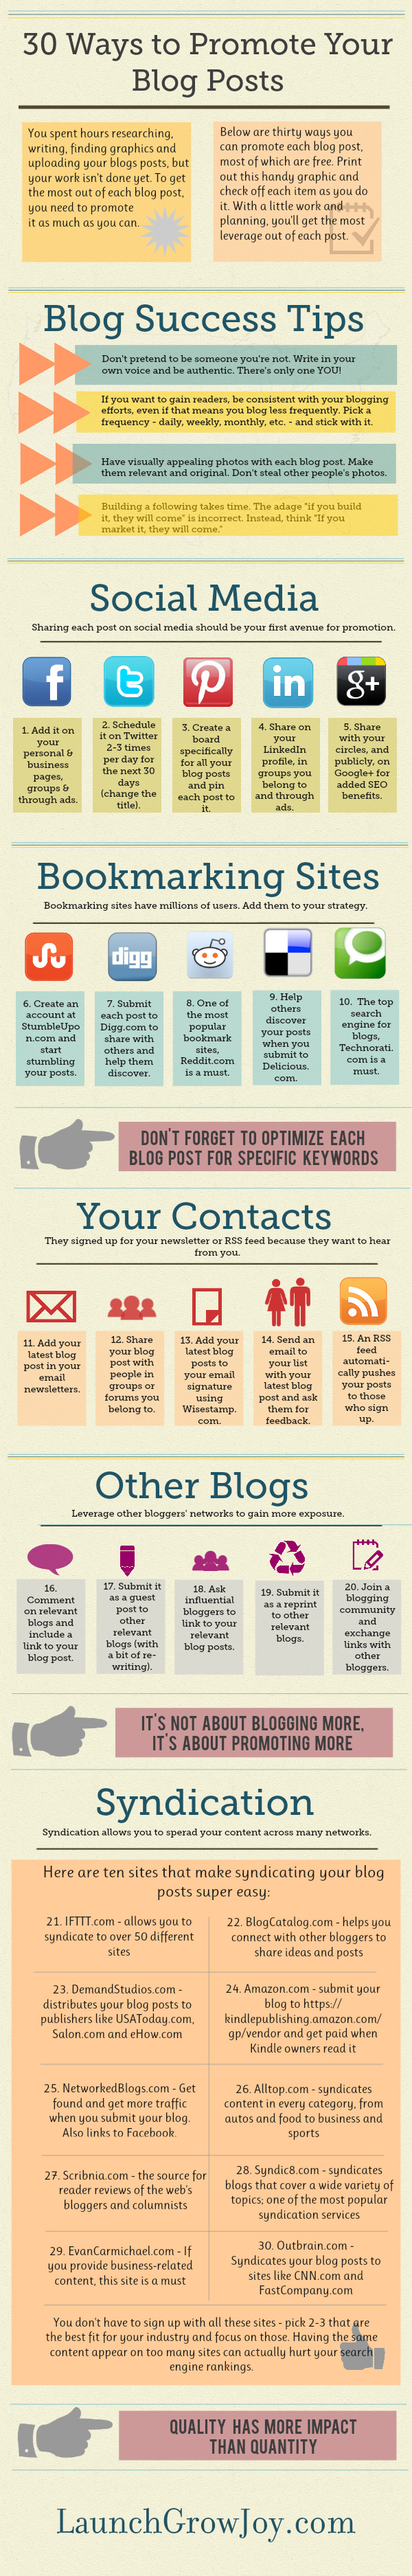 30 Ways to Promote Your Articles